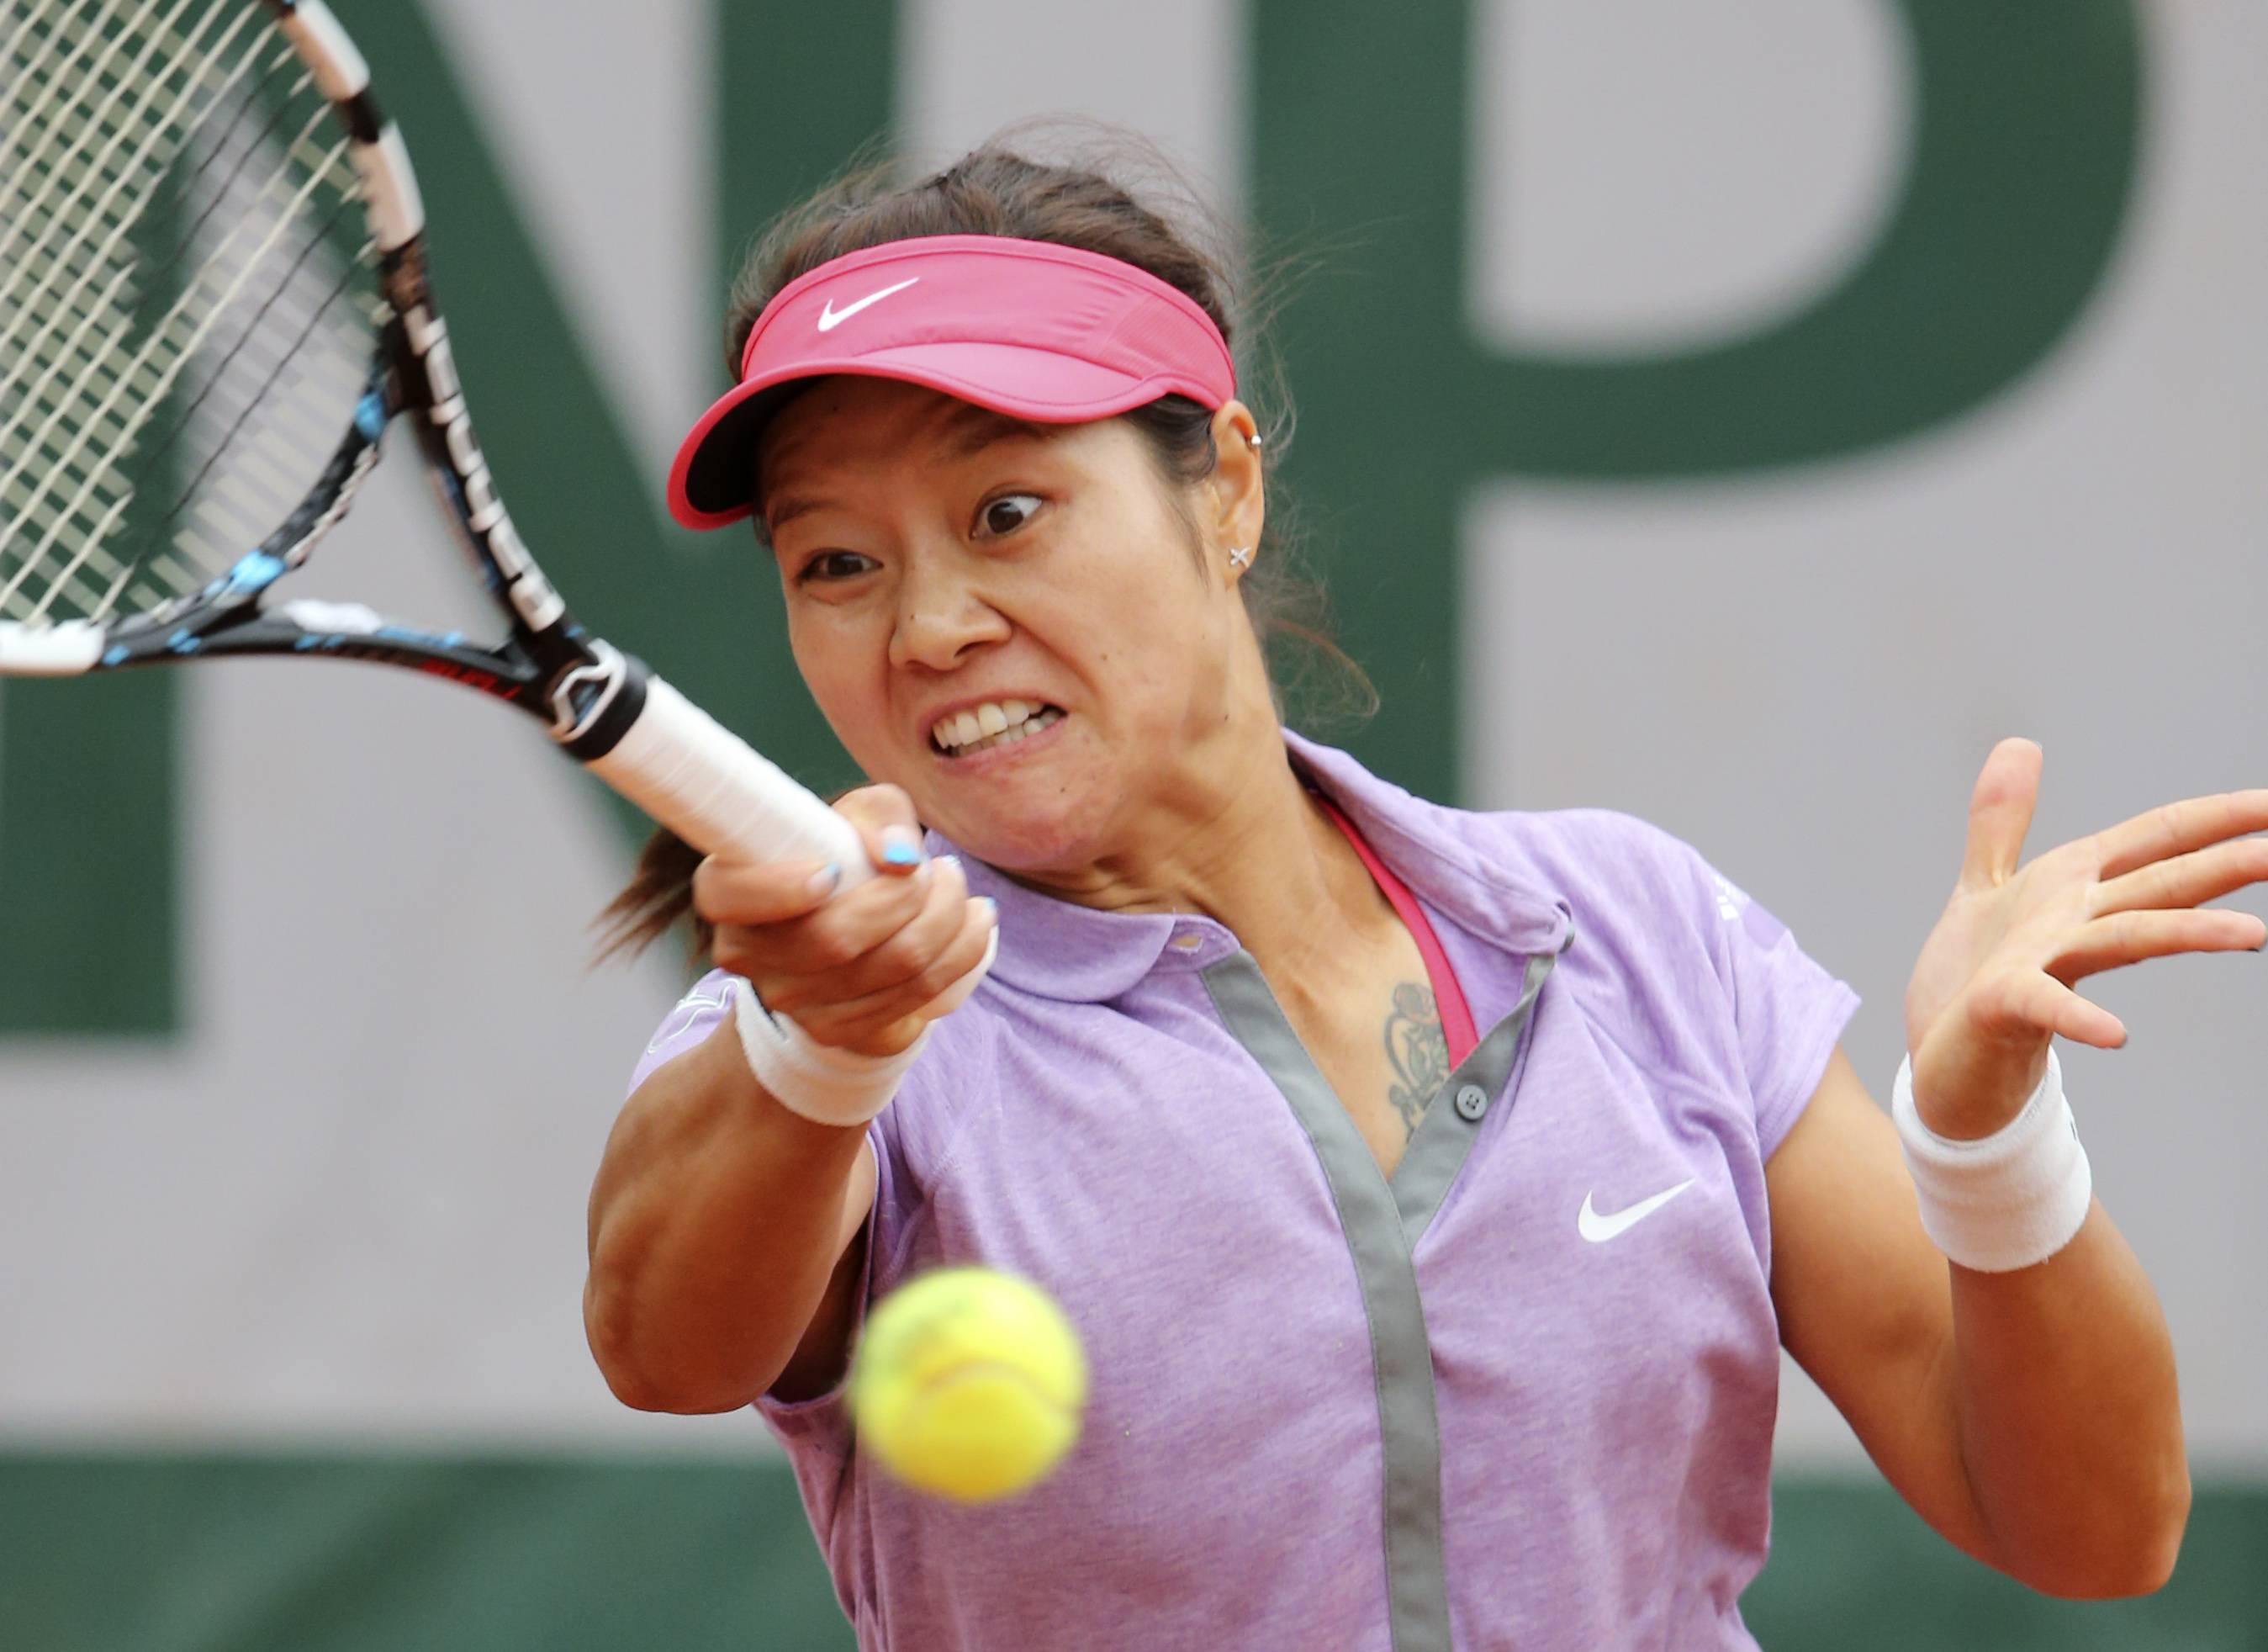 Li Na hits a return against France's Kristina Mladenovic Monday during their first round match in the French Open tennis tournament at Roland Garros stadium in Paris.